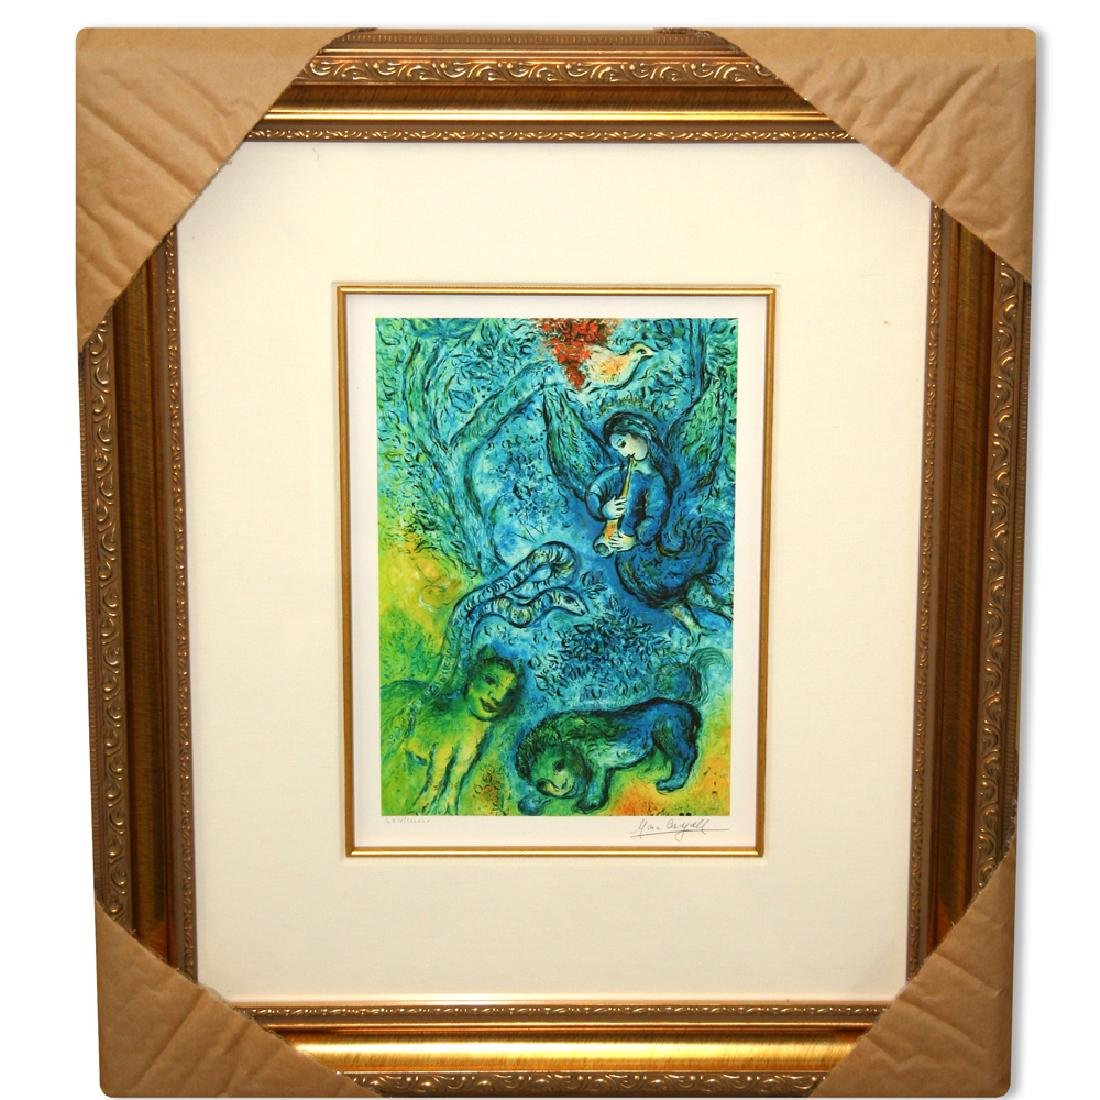 Chagall (After) 'Magic Flute' Museum Framed Giclee-Ltd